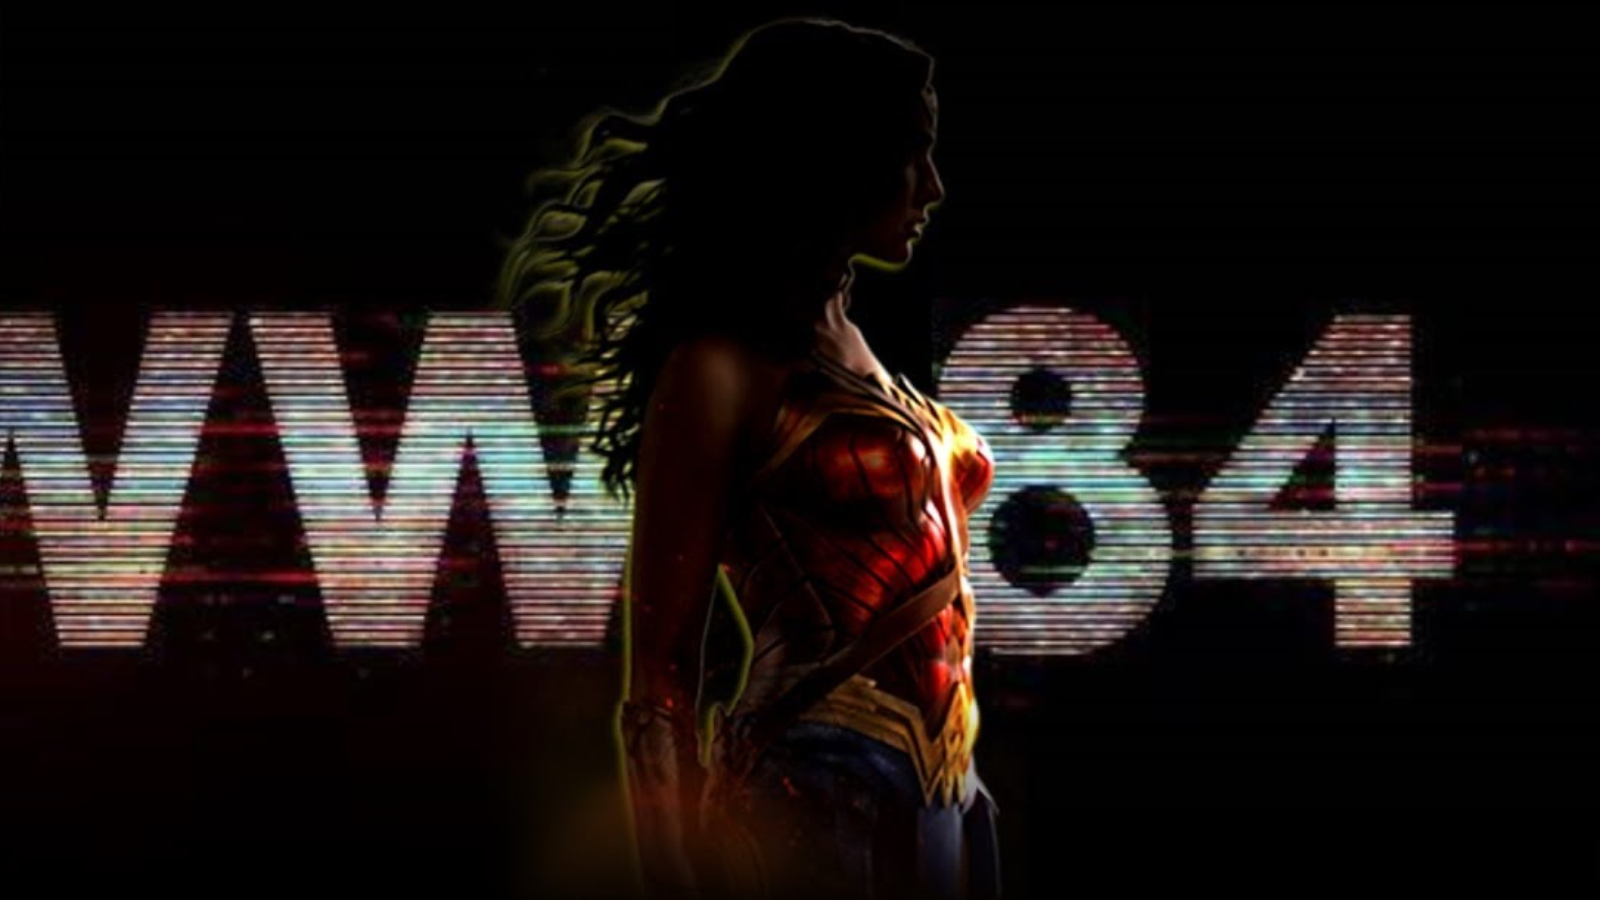 La cineasta Patty Jenkins contempla ideas para spinoff y serie de Wonder Woman